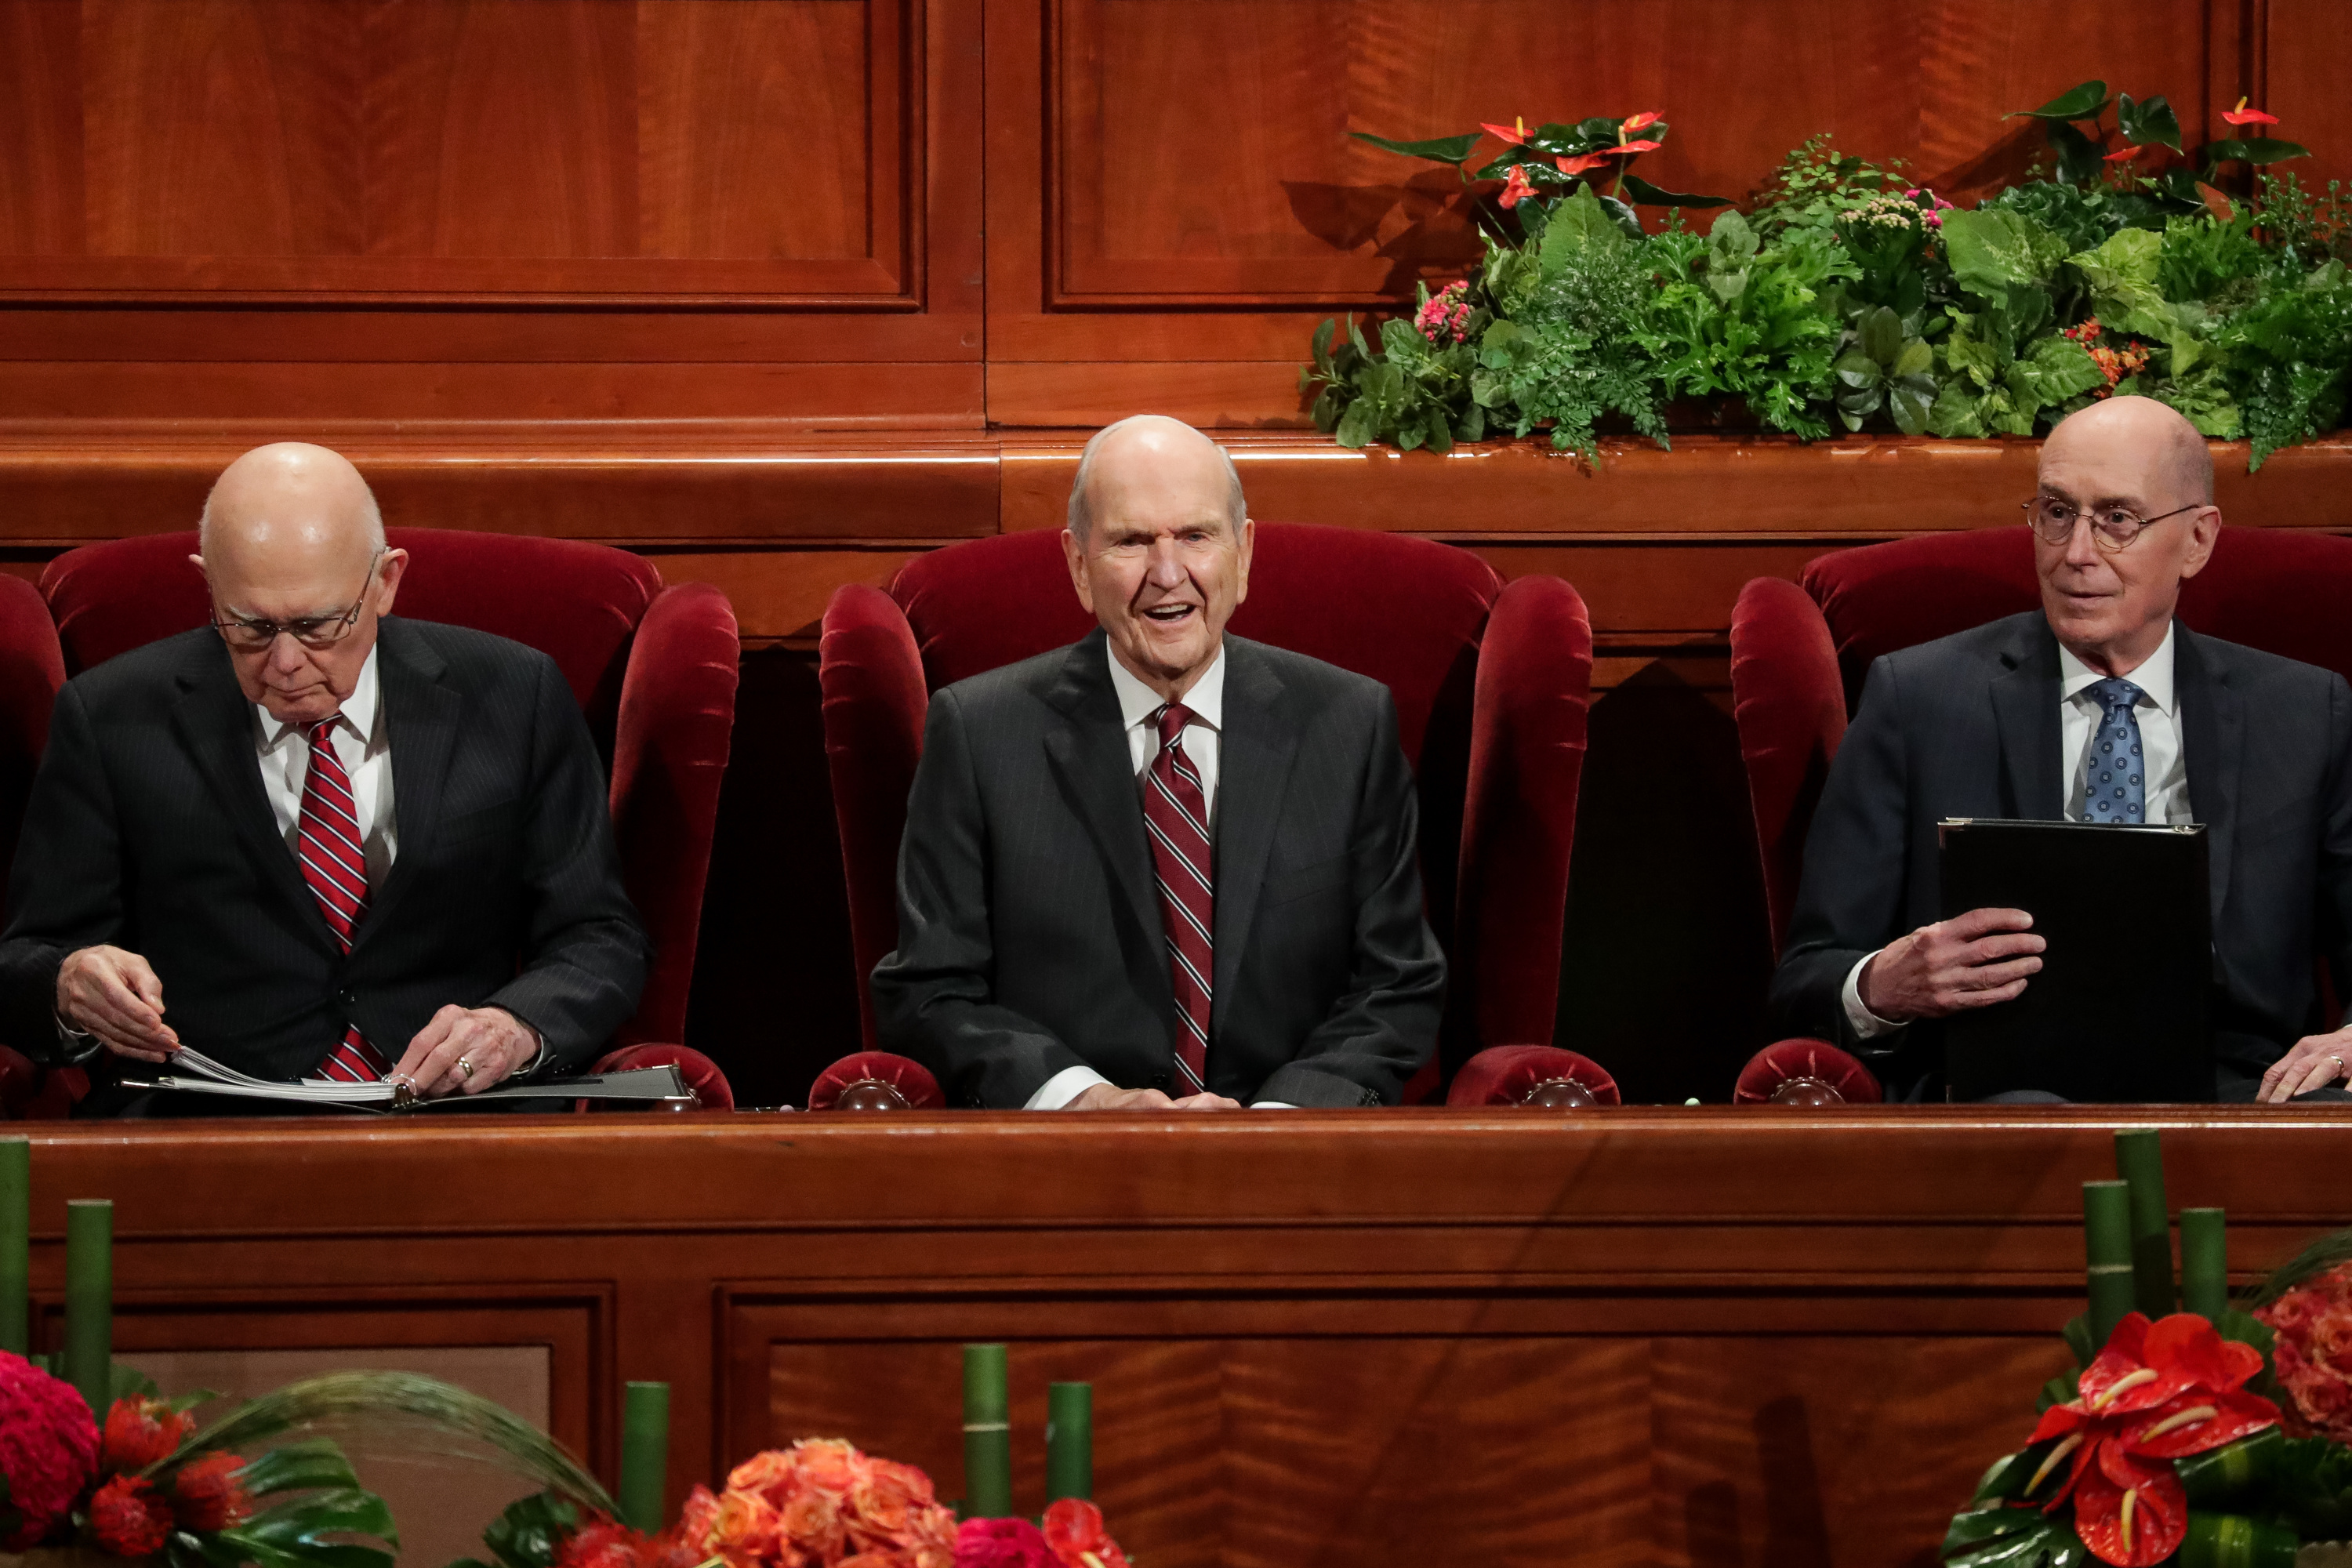 President Russell M. Nelson, center, President Dallin H. Oaks, first counselor, left, and President Henry B. Eyring, second counselor, right, take their seats for the Saturday afternoon session of the 188th Semiannual General Conference of The Church of Jesus Christ of Latter-day Saints in the Conference Center in Salt Lake City on Saturday, Oct. 6, 2018.